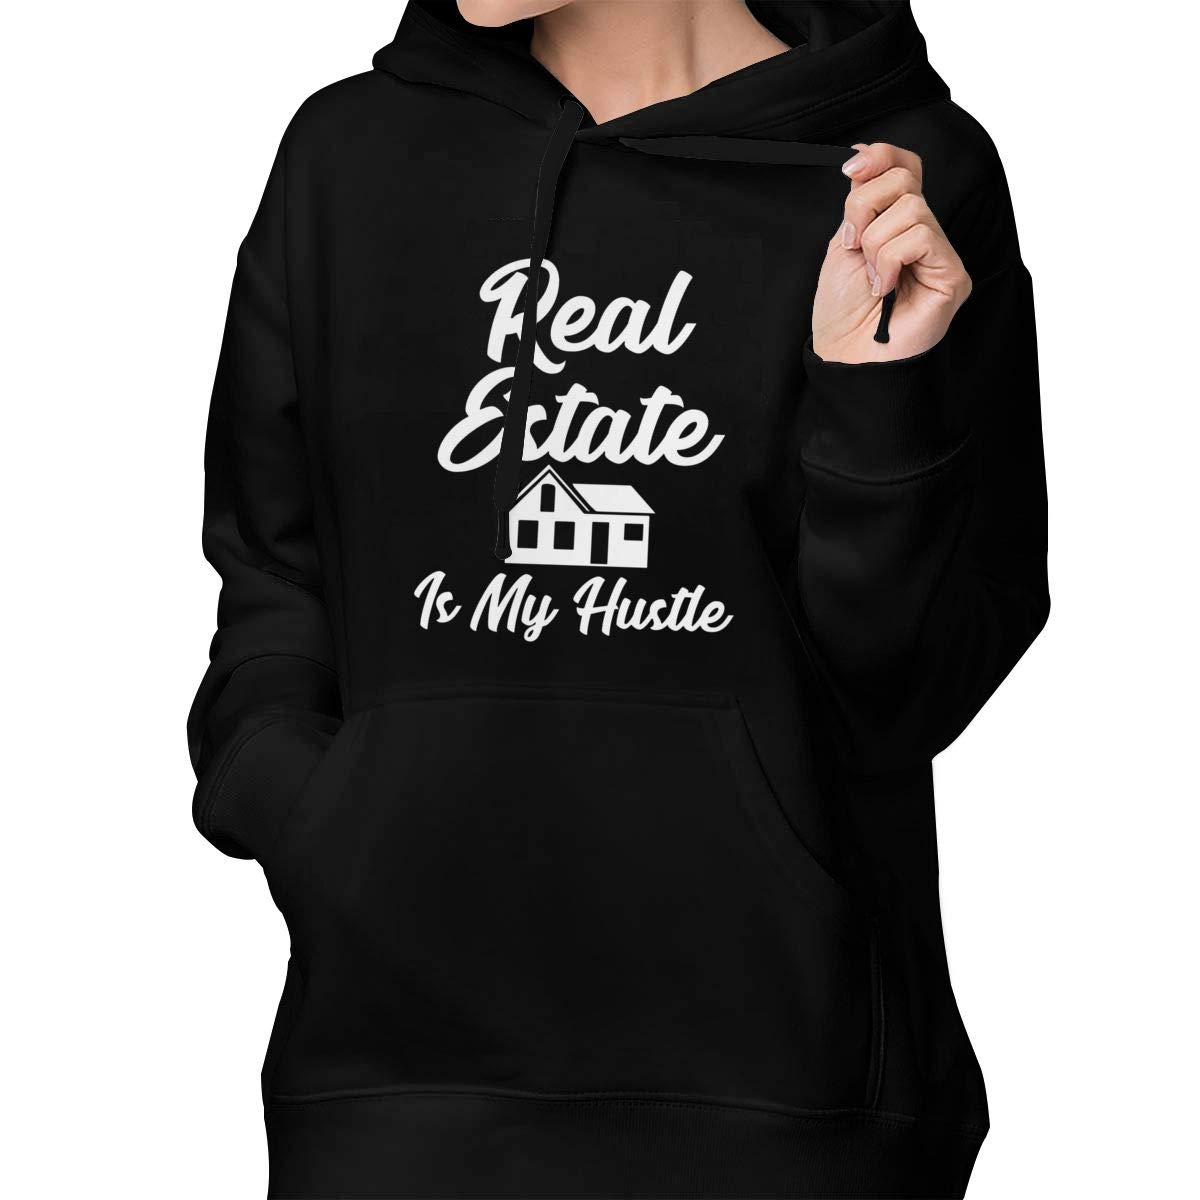 Real Estate is My Hustle Womens Performance Hooded Blouse Pullover with Pockets S-2XL